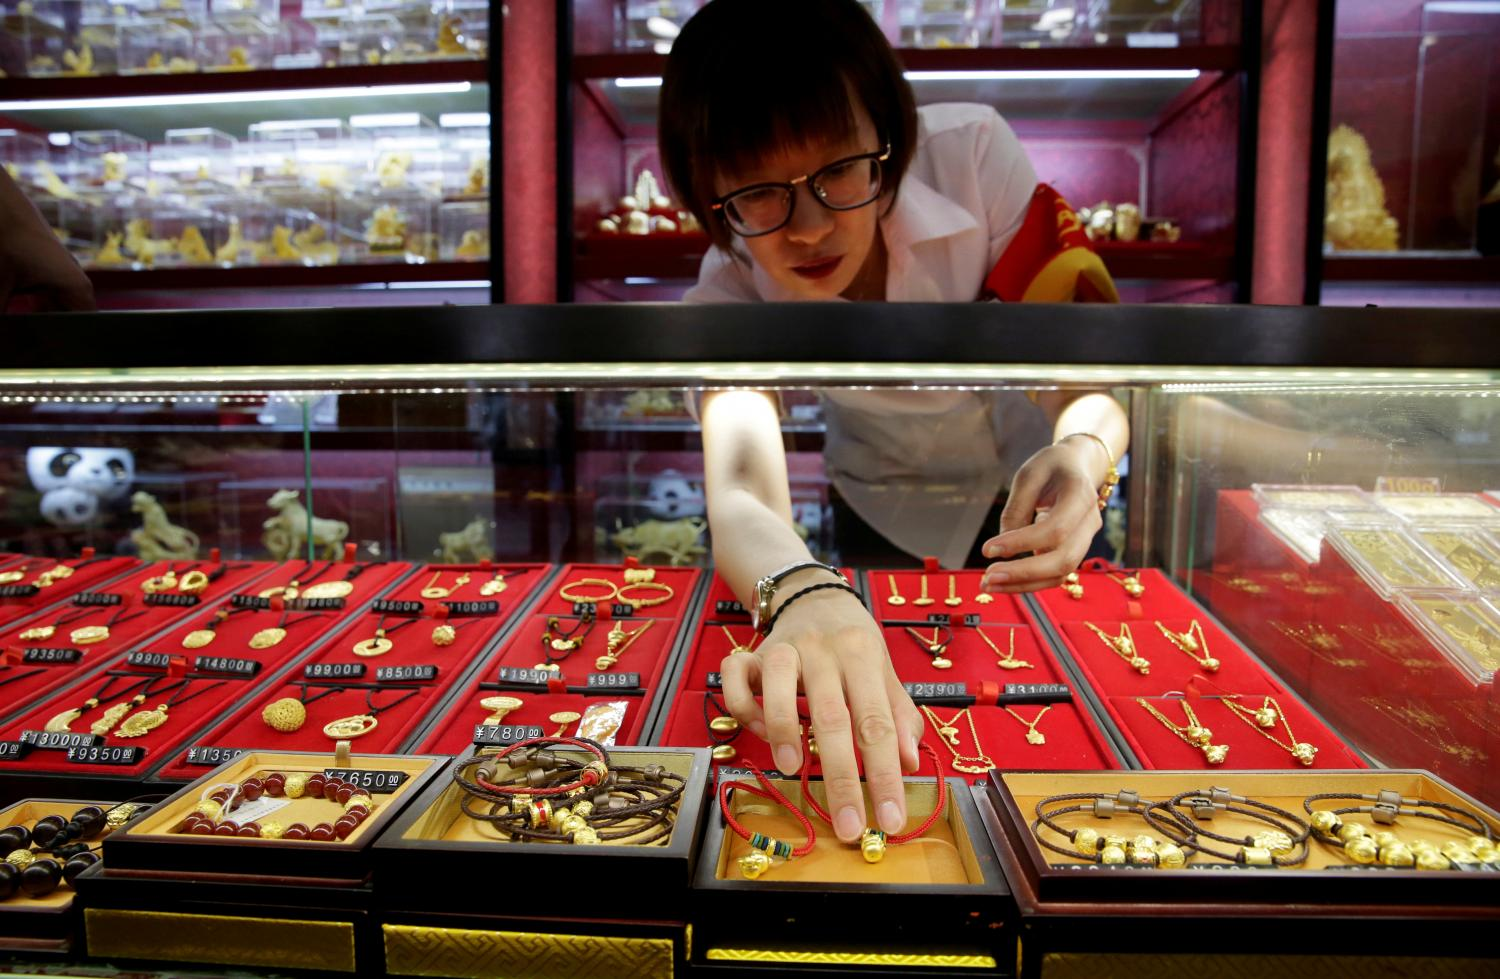 A sales assistant takes out gold ornaments for a customer at Caibai Jewelry store in Beijing. (Reuters photo)